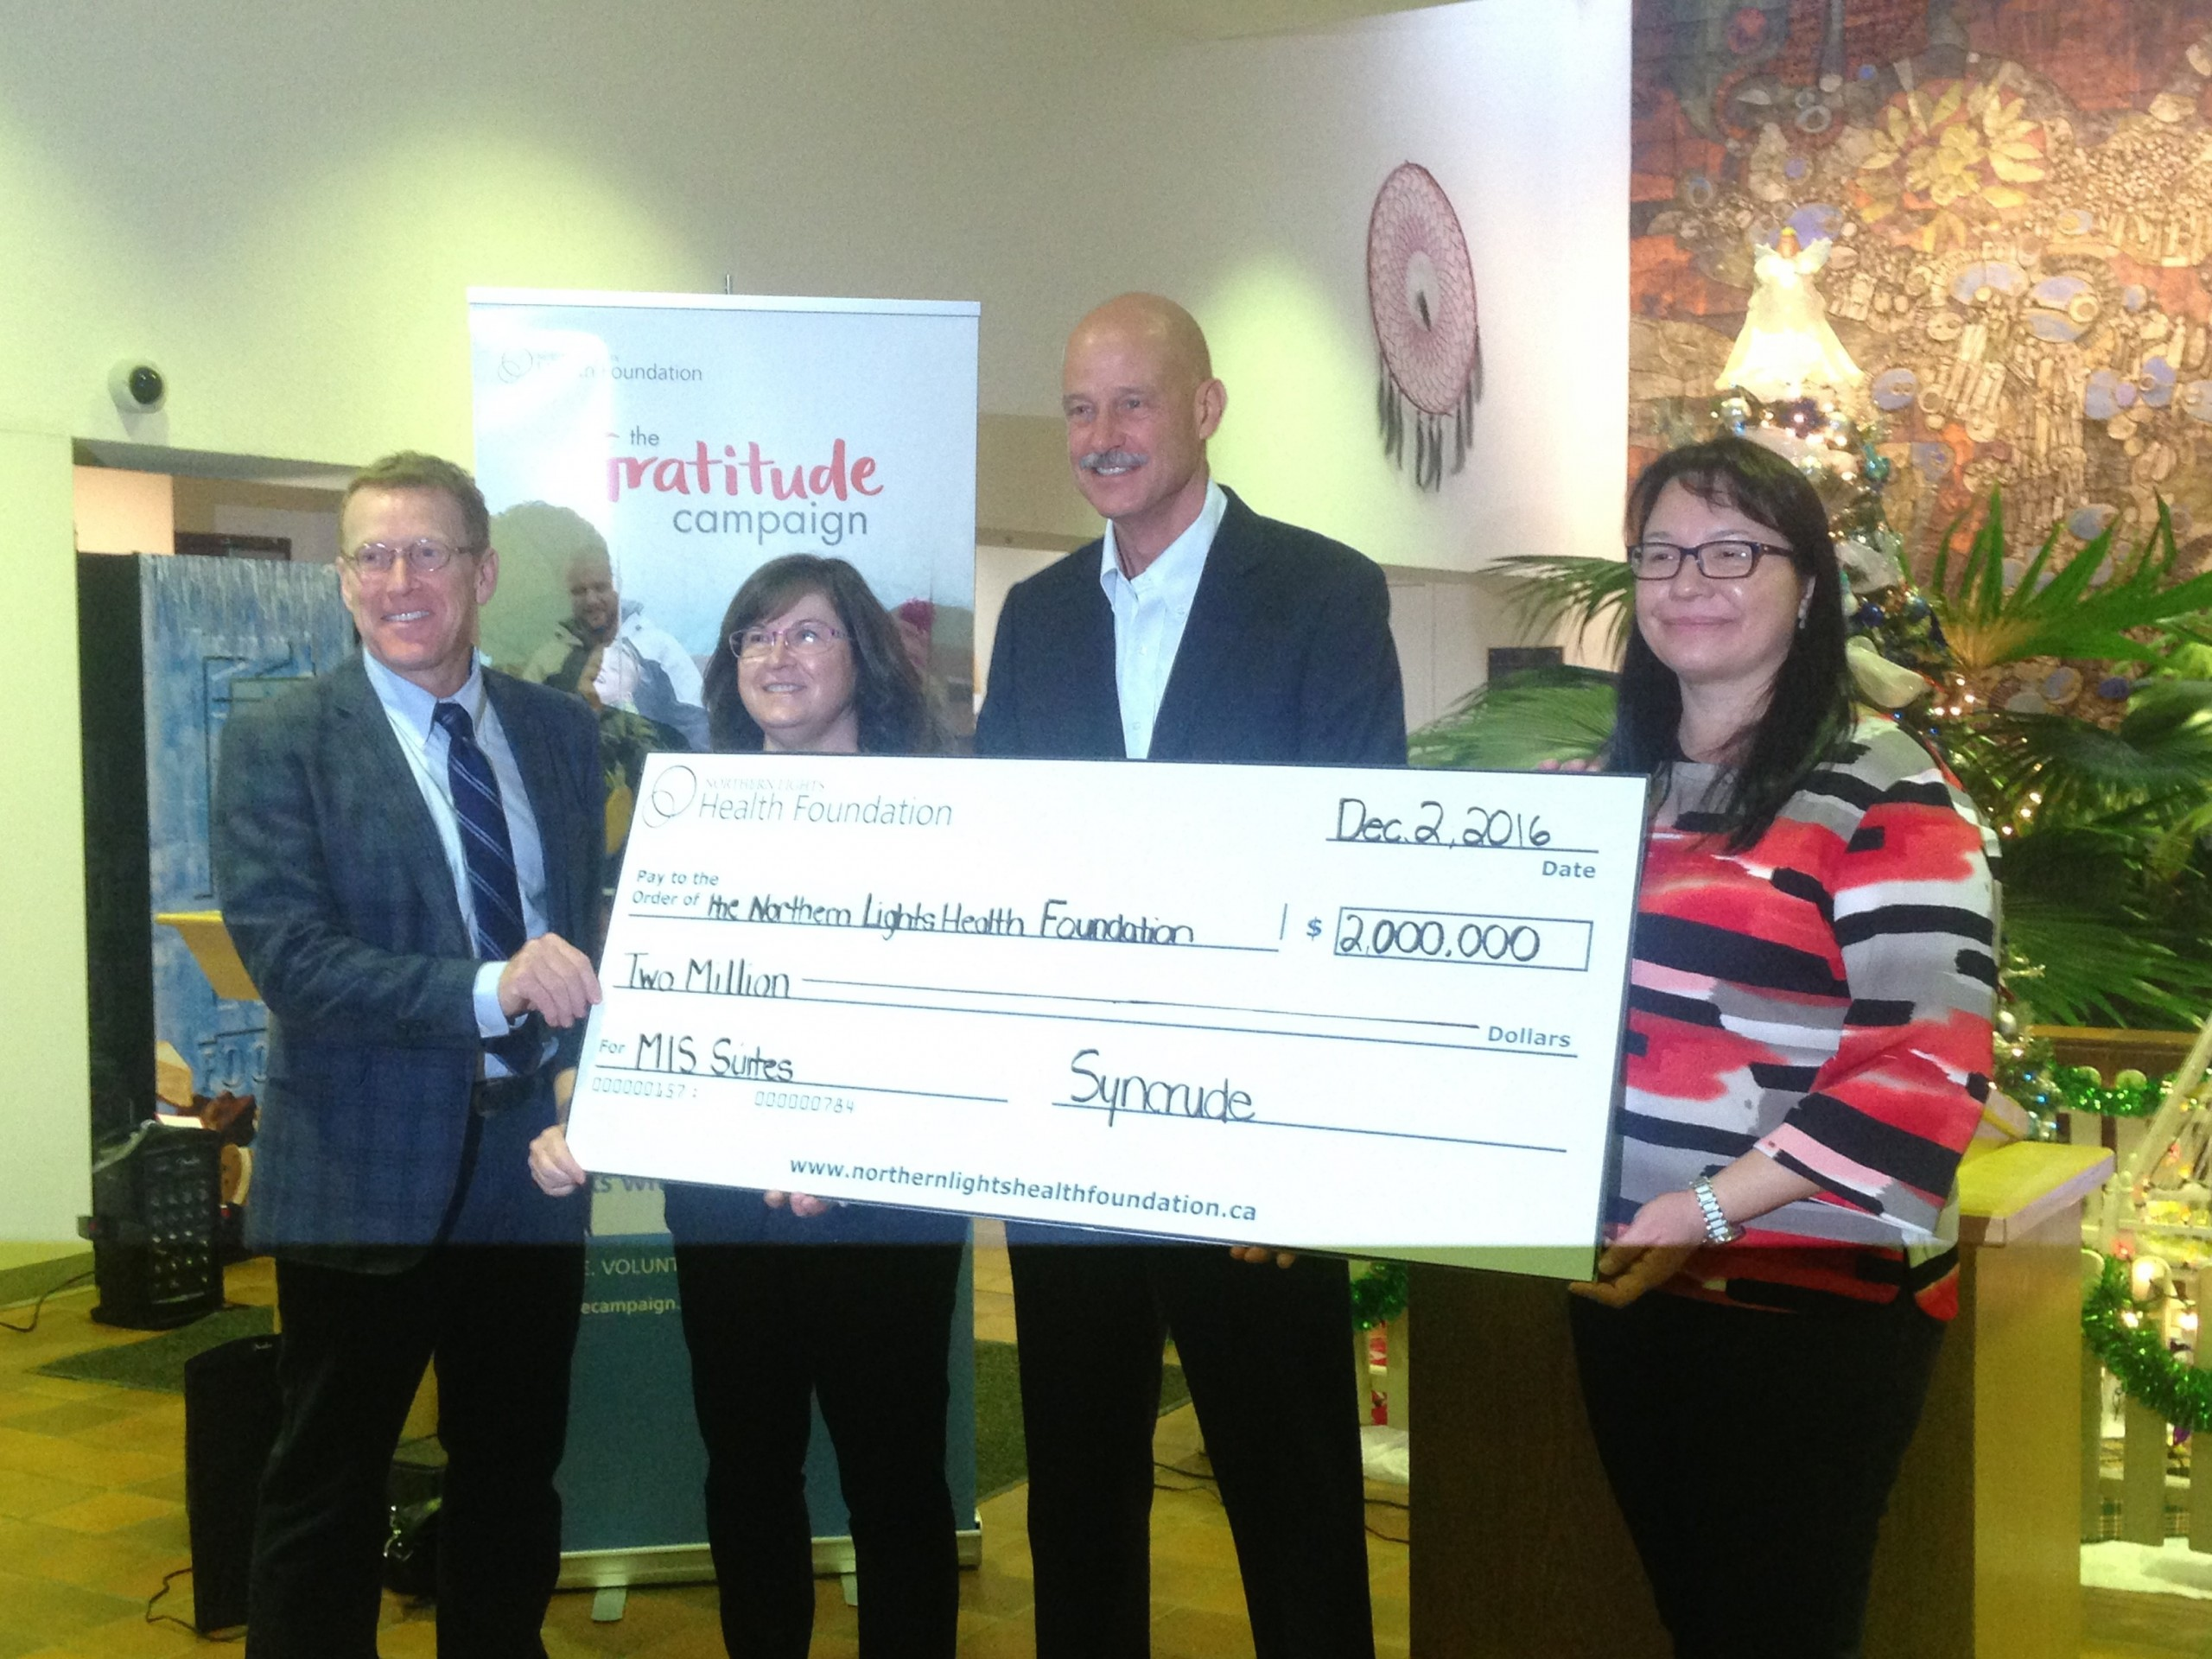 Syncrude Donates $2 Million For New Surgical Suites at NLRHC